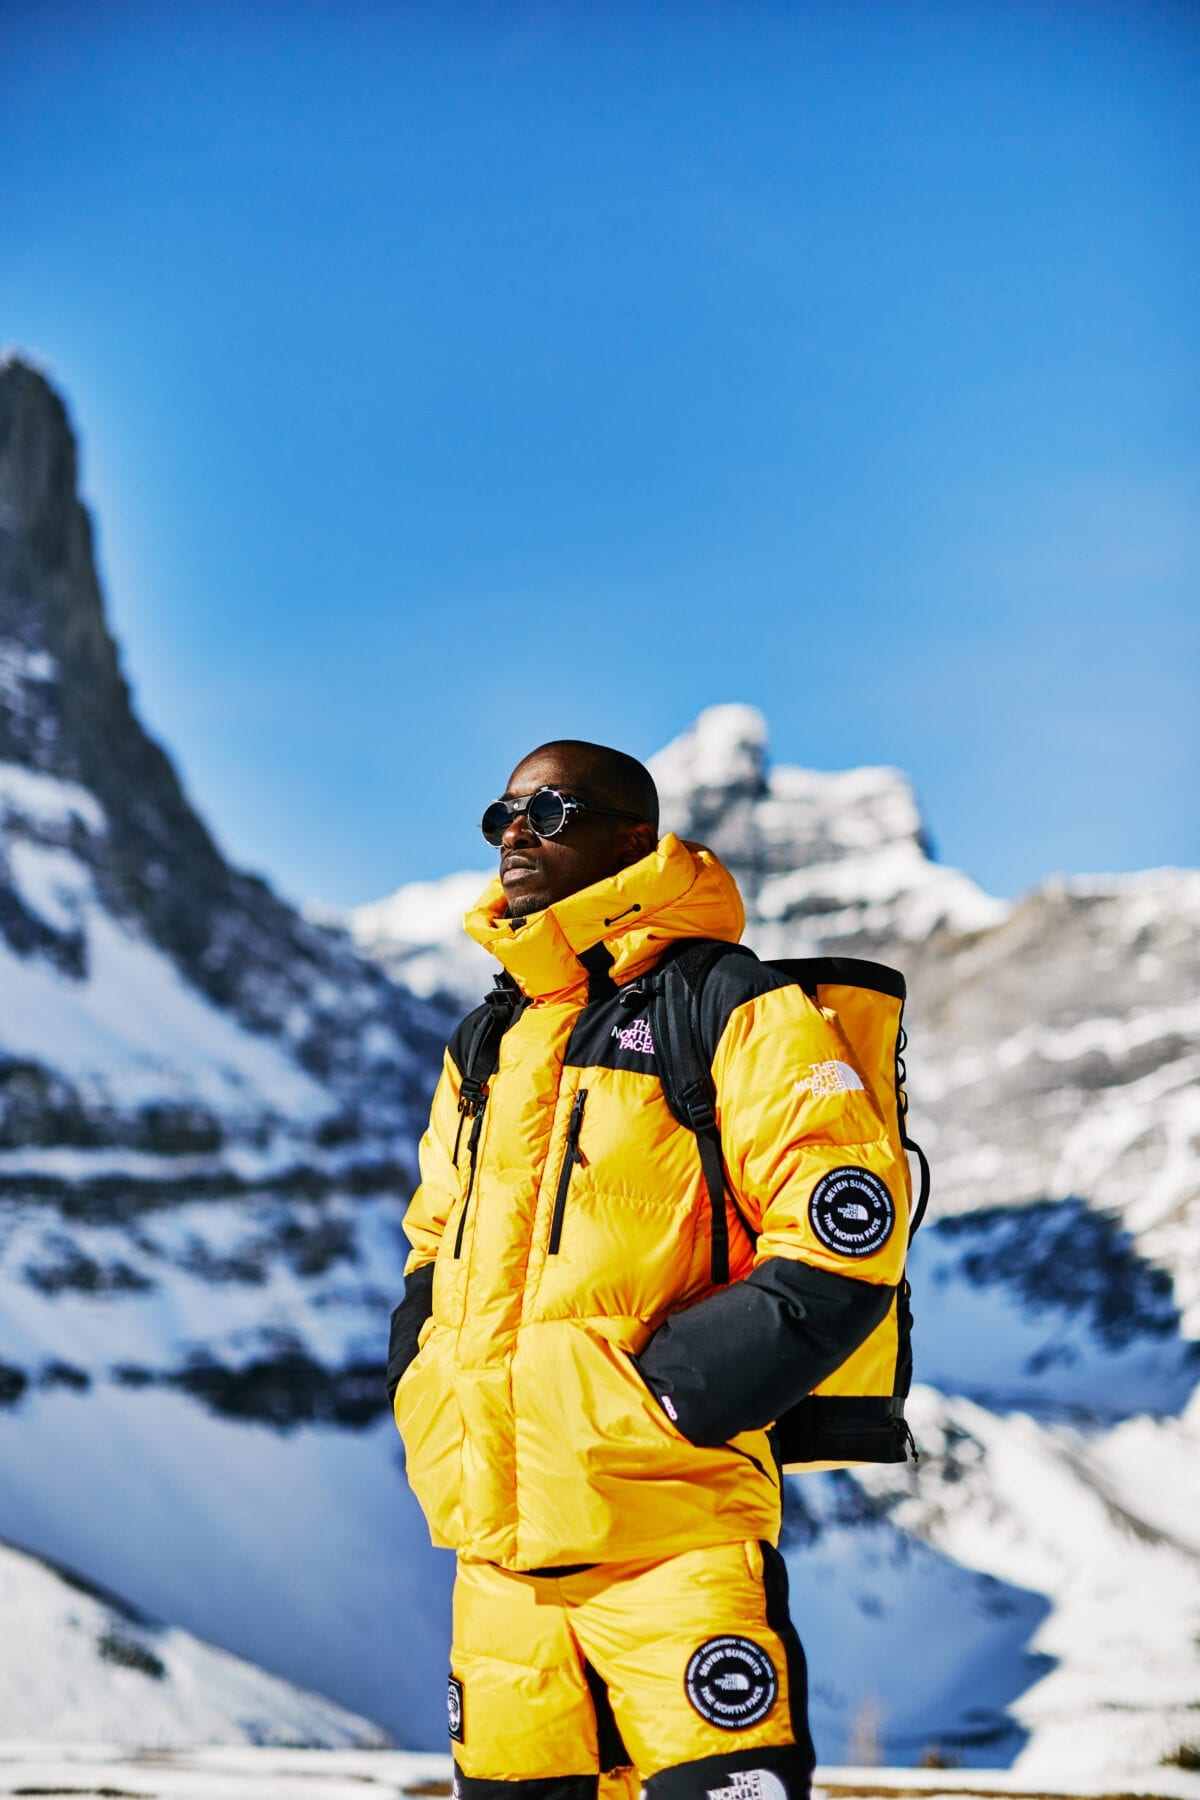 The North Face 7 Summits collectie Overzicht